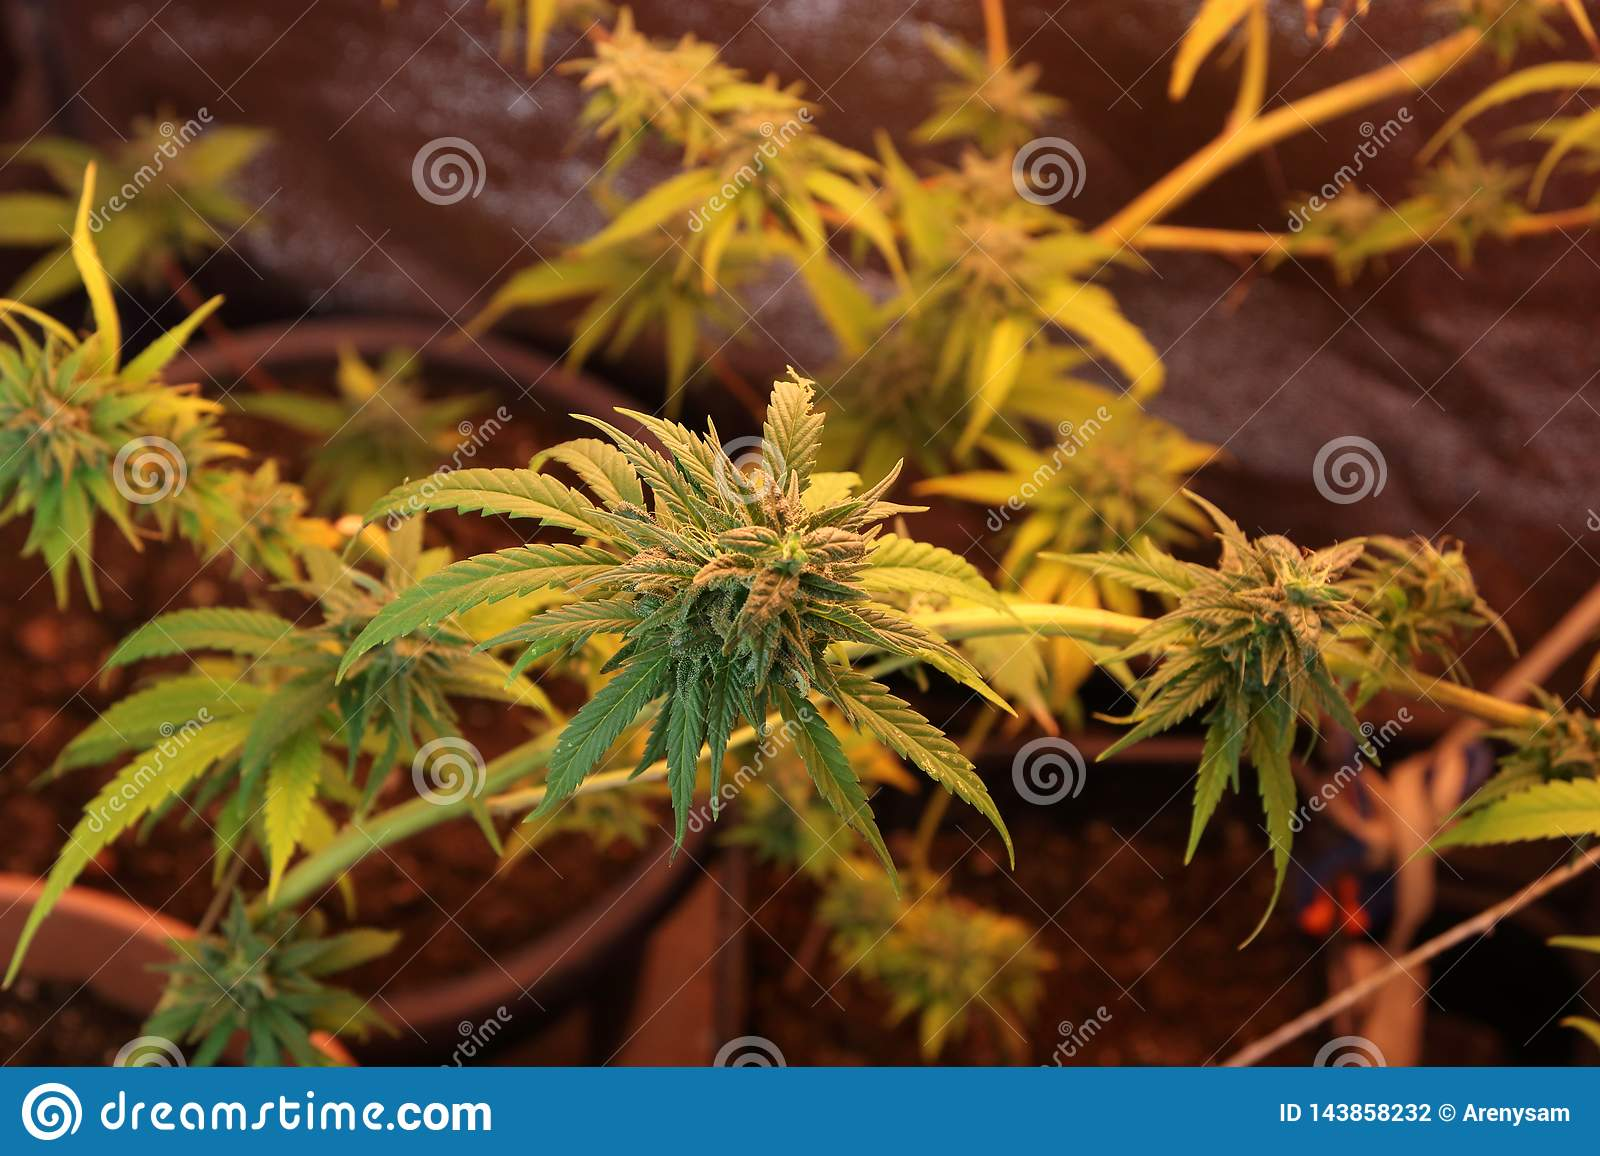 Culture of cannabis flowers in a box